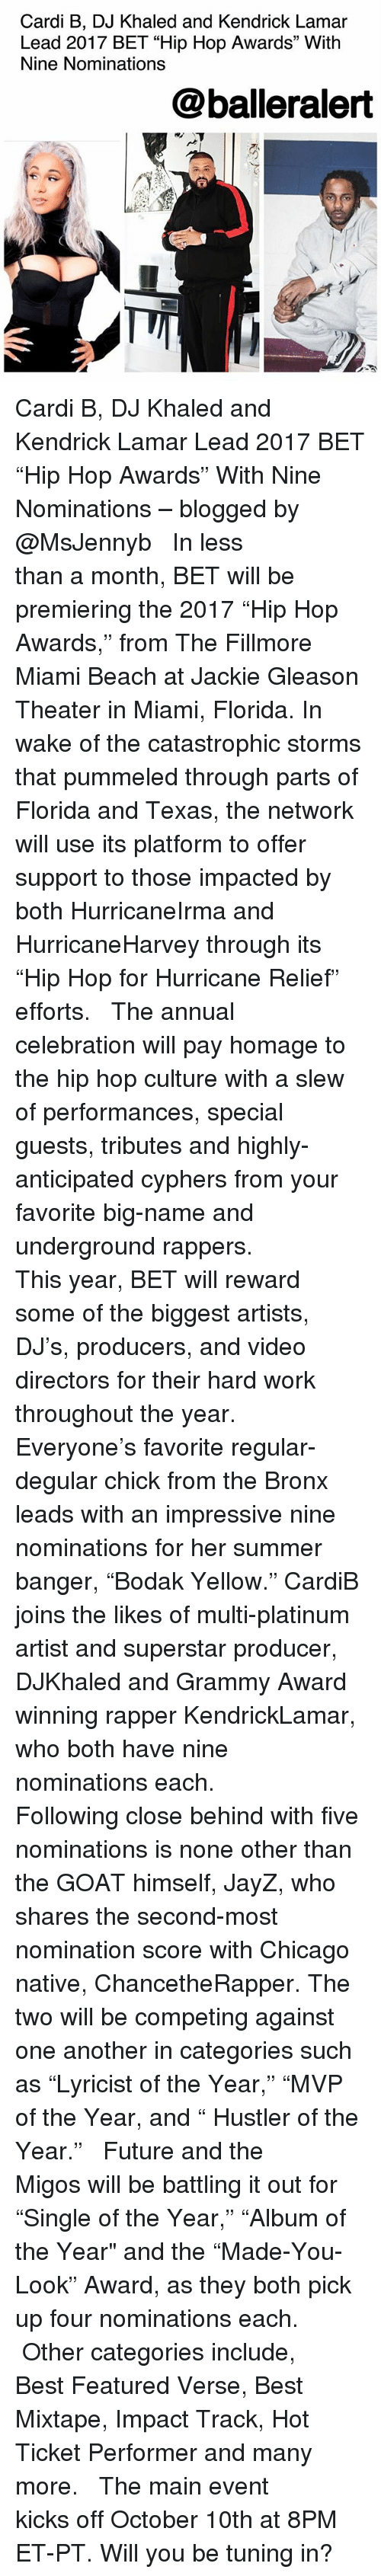 """Chicago, DJ Khaled, and Future: Cardi B, DJ Khaled and Kendrick Lamar  Lead 2017 BET """"Hip Hop Awards"""" With  Nine Nominations  @balleralert Cardi B, DJ Khaled and Kendrick Lamar Lead 2017 BET """"Hip Hop Awards"""" With Nine Nominations – blogged by @MsJennyb ⠀⠀⠀⠀⠀⠀⠀ ⠀⠀⠀⠀⠀⠀⠀ In less than a month, BET will be premiering the 2017 """"Hip Hop Awards,"""" from The Fillmore Miami Beach at Jackie Gleason Theater in Miami, Florida. In wake of the catastrophic storms that pummeled through parts of Florida and Texas, the network will use its platform to offer support to those impacted by both HurricaneIrma and HurricaneHarvey through its """"Hip Hop for Hurricane Relief"""" efforts. ⠀⠀⠀⠀⠀⠀⠀ ⠀⠀⠀⠀⠀⠀⠀ The annual celebration will pay homage to the hip hop culture with a slew of performances, special guests, tributes and highly-anticipated cyphers from your favorite big-name and underground rappers. ⠀⠀⠀⠀⠀⠀⠀ ⠀⠀⠀⠀⠀⠀⠀ This year, BET will reward some of the biggest artists, DJ's, producers, and video directors for their hard work throughout the year. ⠀⠀⠀⠀⠀⠀⠀ ⠀⠀⠀⠀⠀⠀⠀ Everyone's favorite regular-degular chick from the Bronx leads with an impressive nine nominations for her summer banger, """"Bodak Yellow."""" CardiB joins the likes of multi-platinum artist and superstar producer, DJKhaled and Grammy Award winning rapper KendrickLamar, who both have nine nominations each. ⠀⠀⠀⠀⠀⠀⠀ ⠀⠀⠀⠀⠀⠀⠀ Following close behind with five nominations is none other than the GOAT himself, JayZ, who shares the second-most nomination score with Chicago native, ChancetheRapper. The two will be competing against one another in categories such as """"Lyricist of the Year,"""" """"MVP of the Year, and """" Hustler of the Year."""" ⠀⠀⠀⠀⠀⠀⠀ ⠀⠀⠀⠀⠀⠀⠀ Future and the Migos will be battling it out for """"Single of the Year,"""" """"Album of the Year"""" and the """"Made-You-Look"""" Award, as they both pick up four nominations each. ⠀⠀⠀⠀⠀⠀⠀ ⠀⠀⠀⠀⠀⠀⠀ Other categories include, Best Featured Verse, Best Mixtape, Impact Track, Hot Ticket Performer and many more. ⠀⠀⠀⠀⠀⠀⠀ ⠀⠀⠀⠀⠀⠀⠀ Th"""